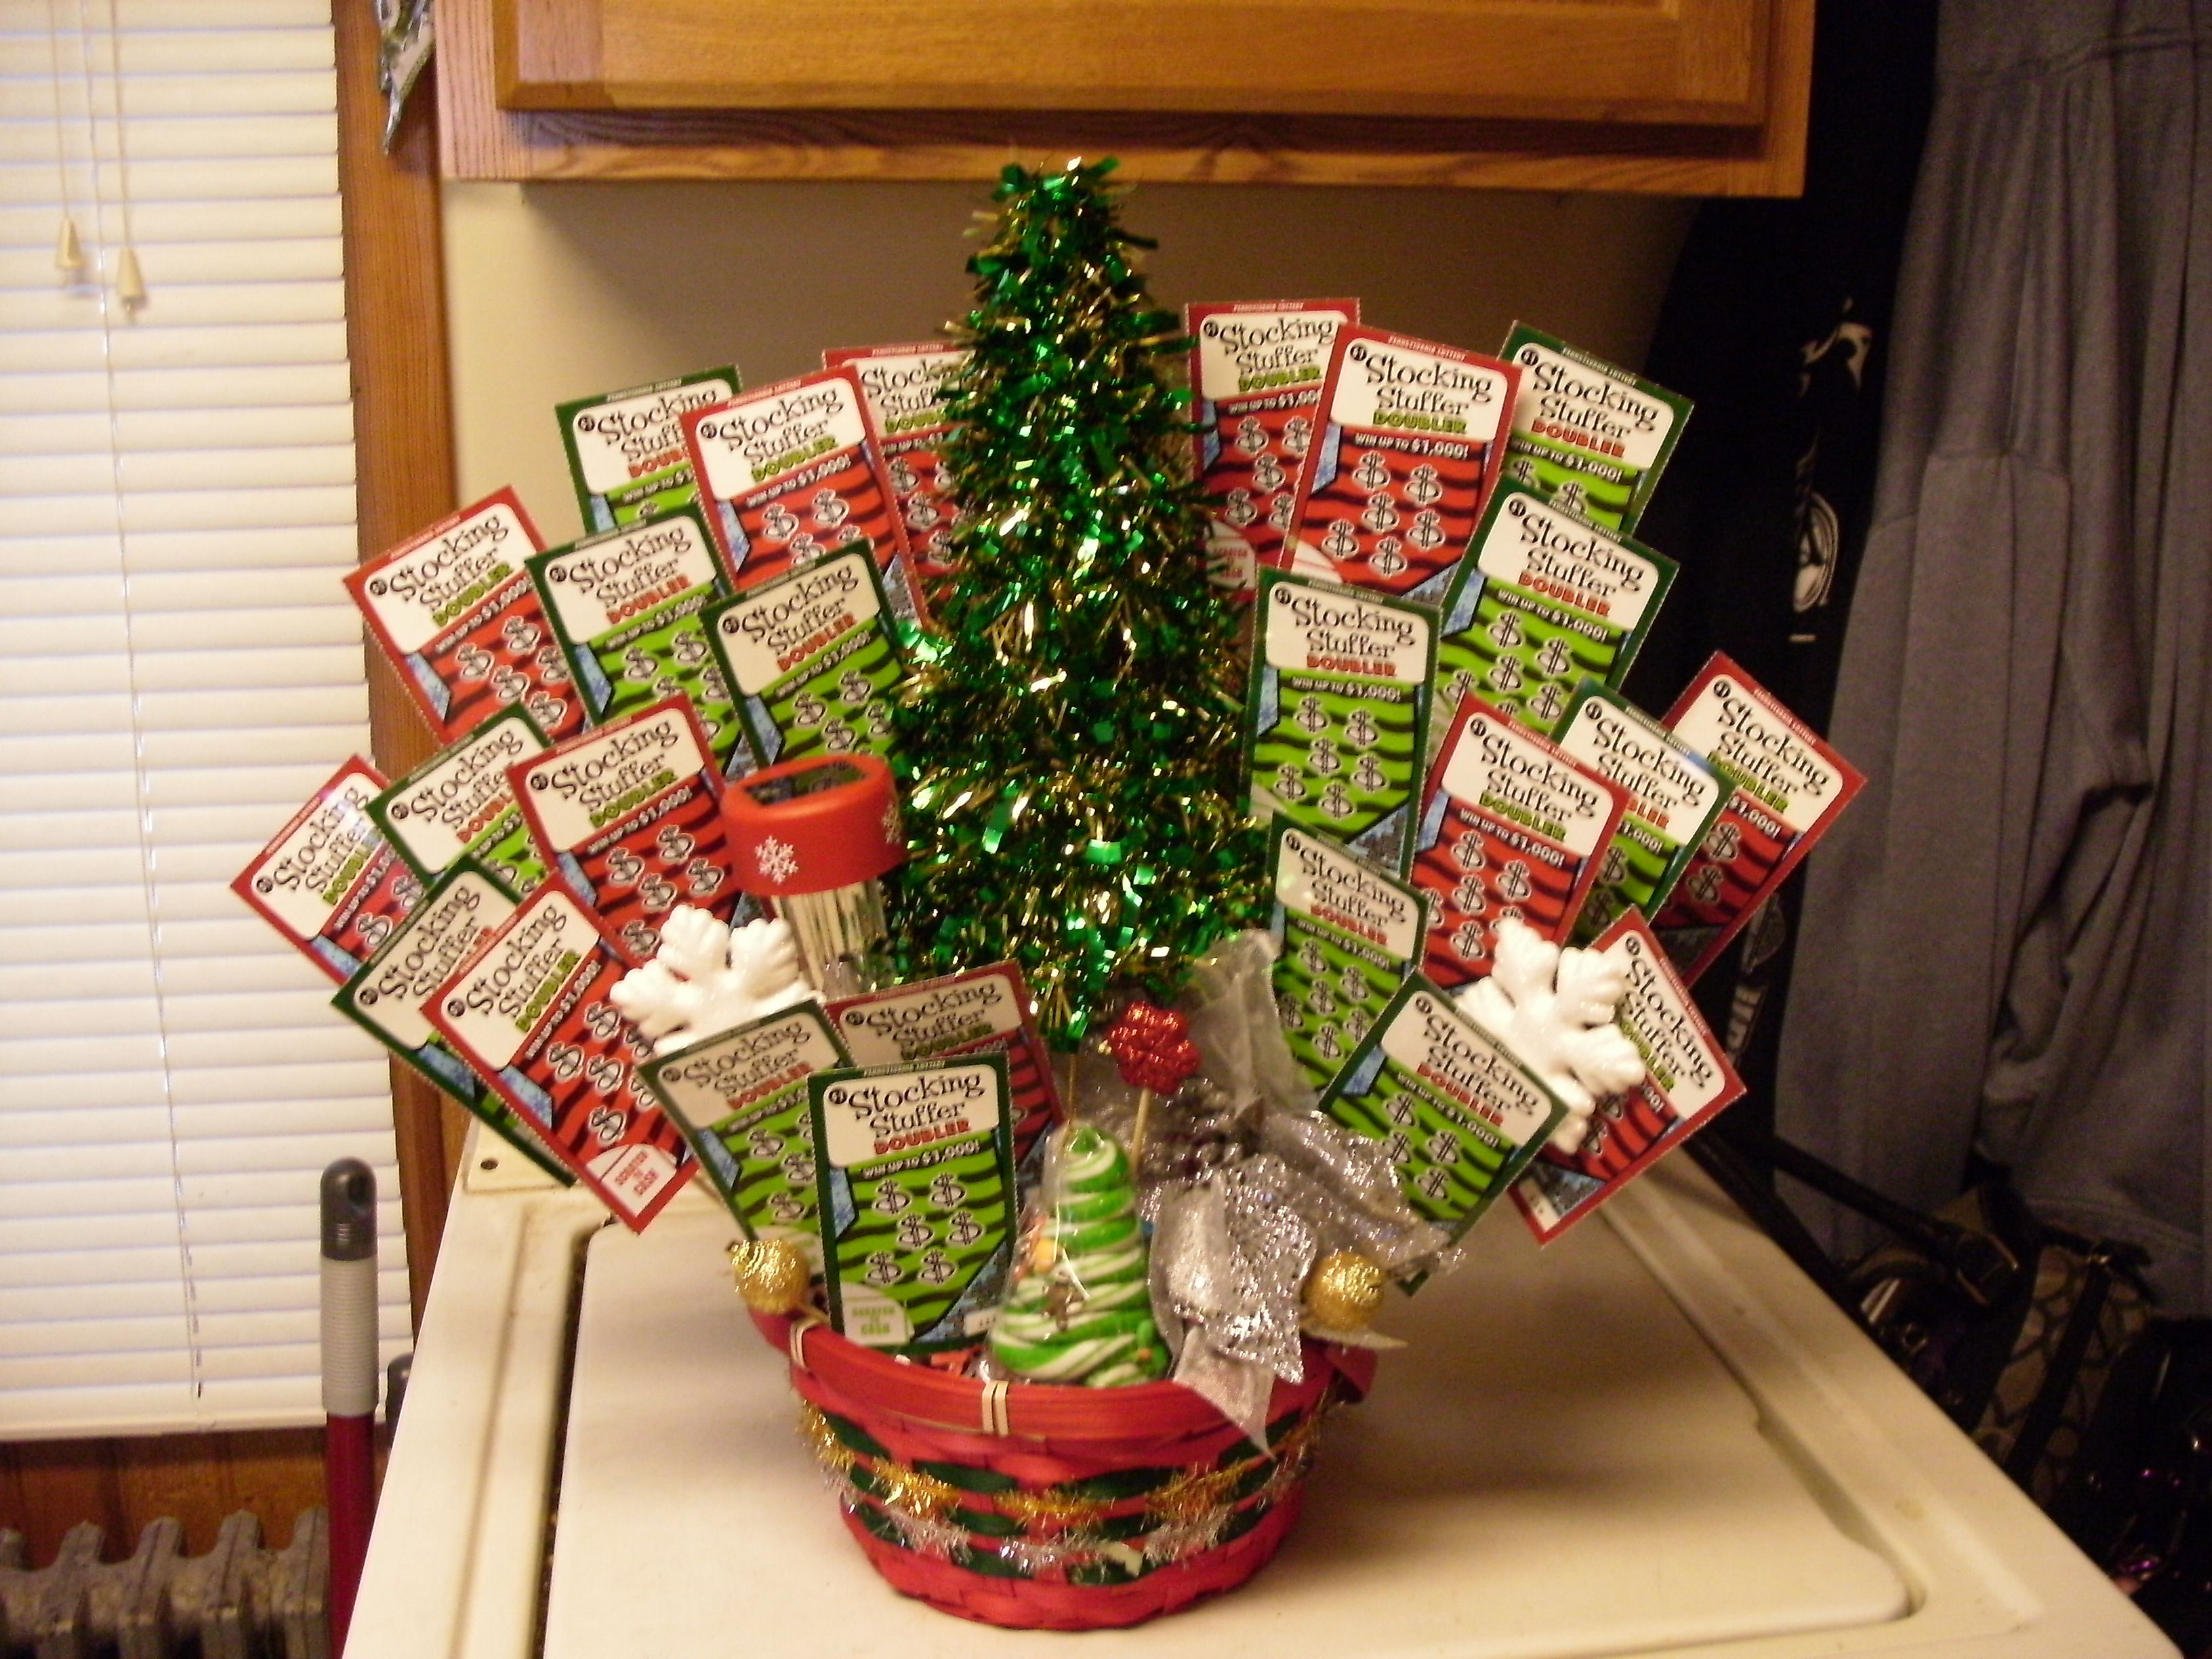 Lottery Ticket Gift Ideas - Bing images